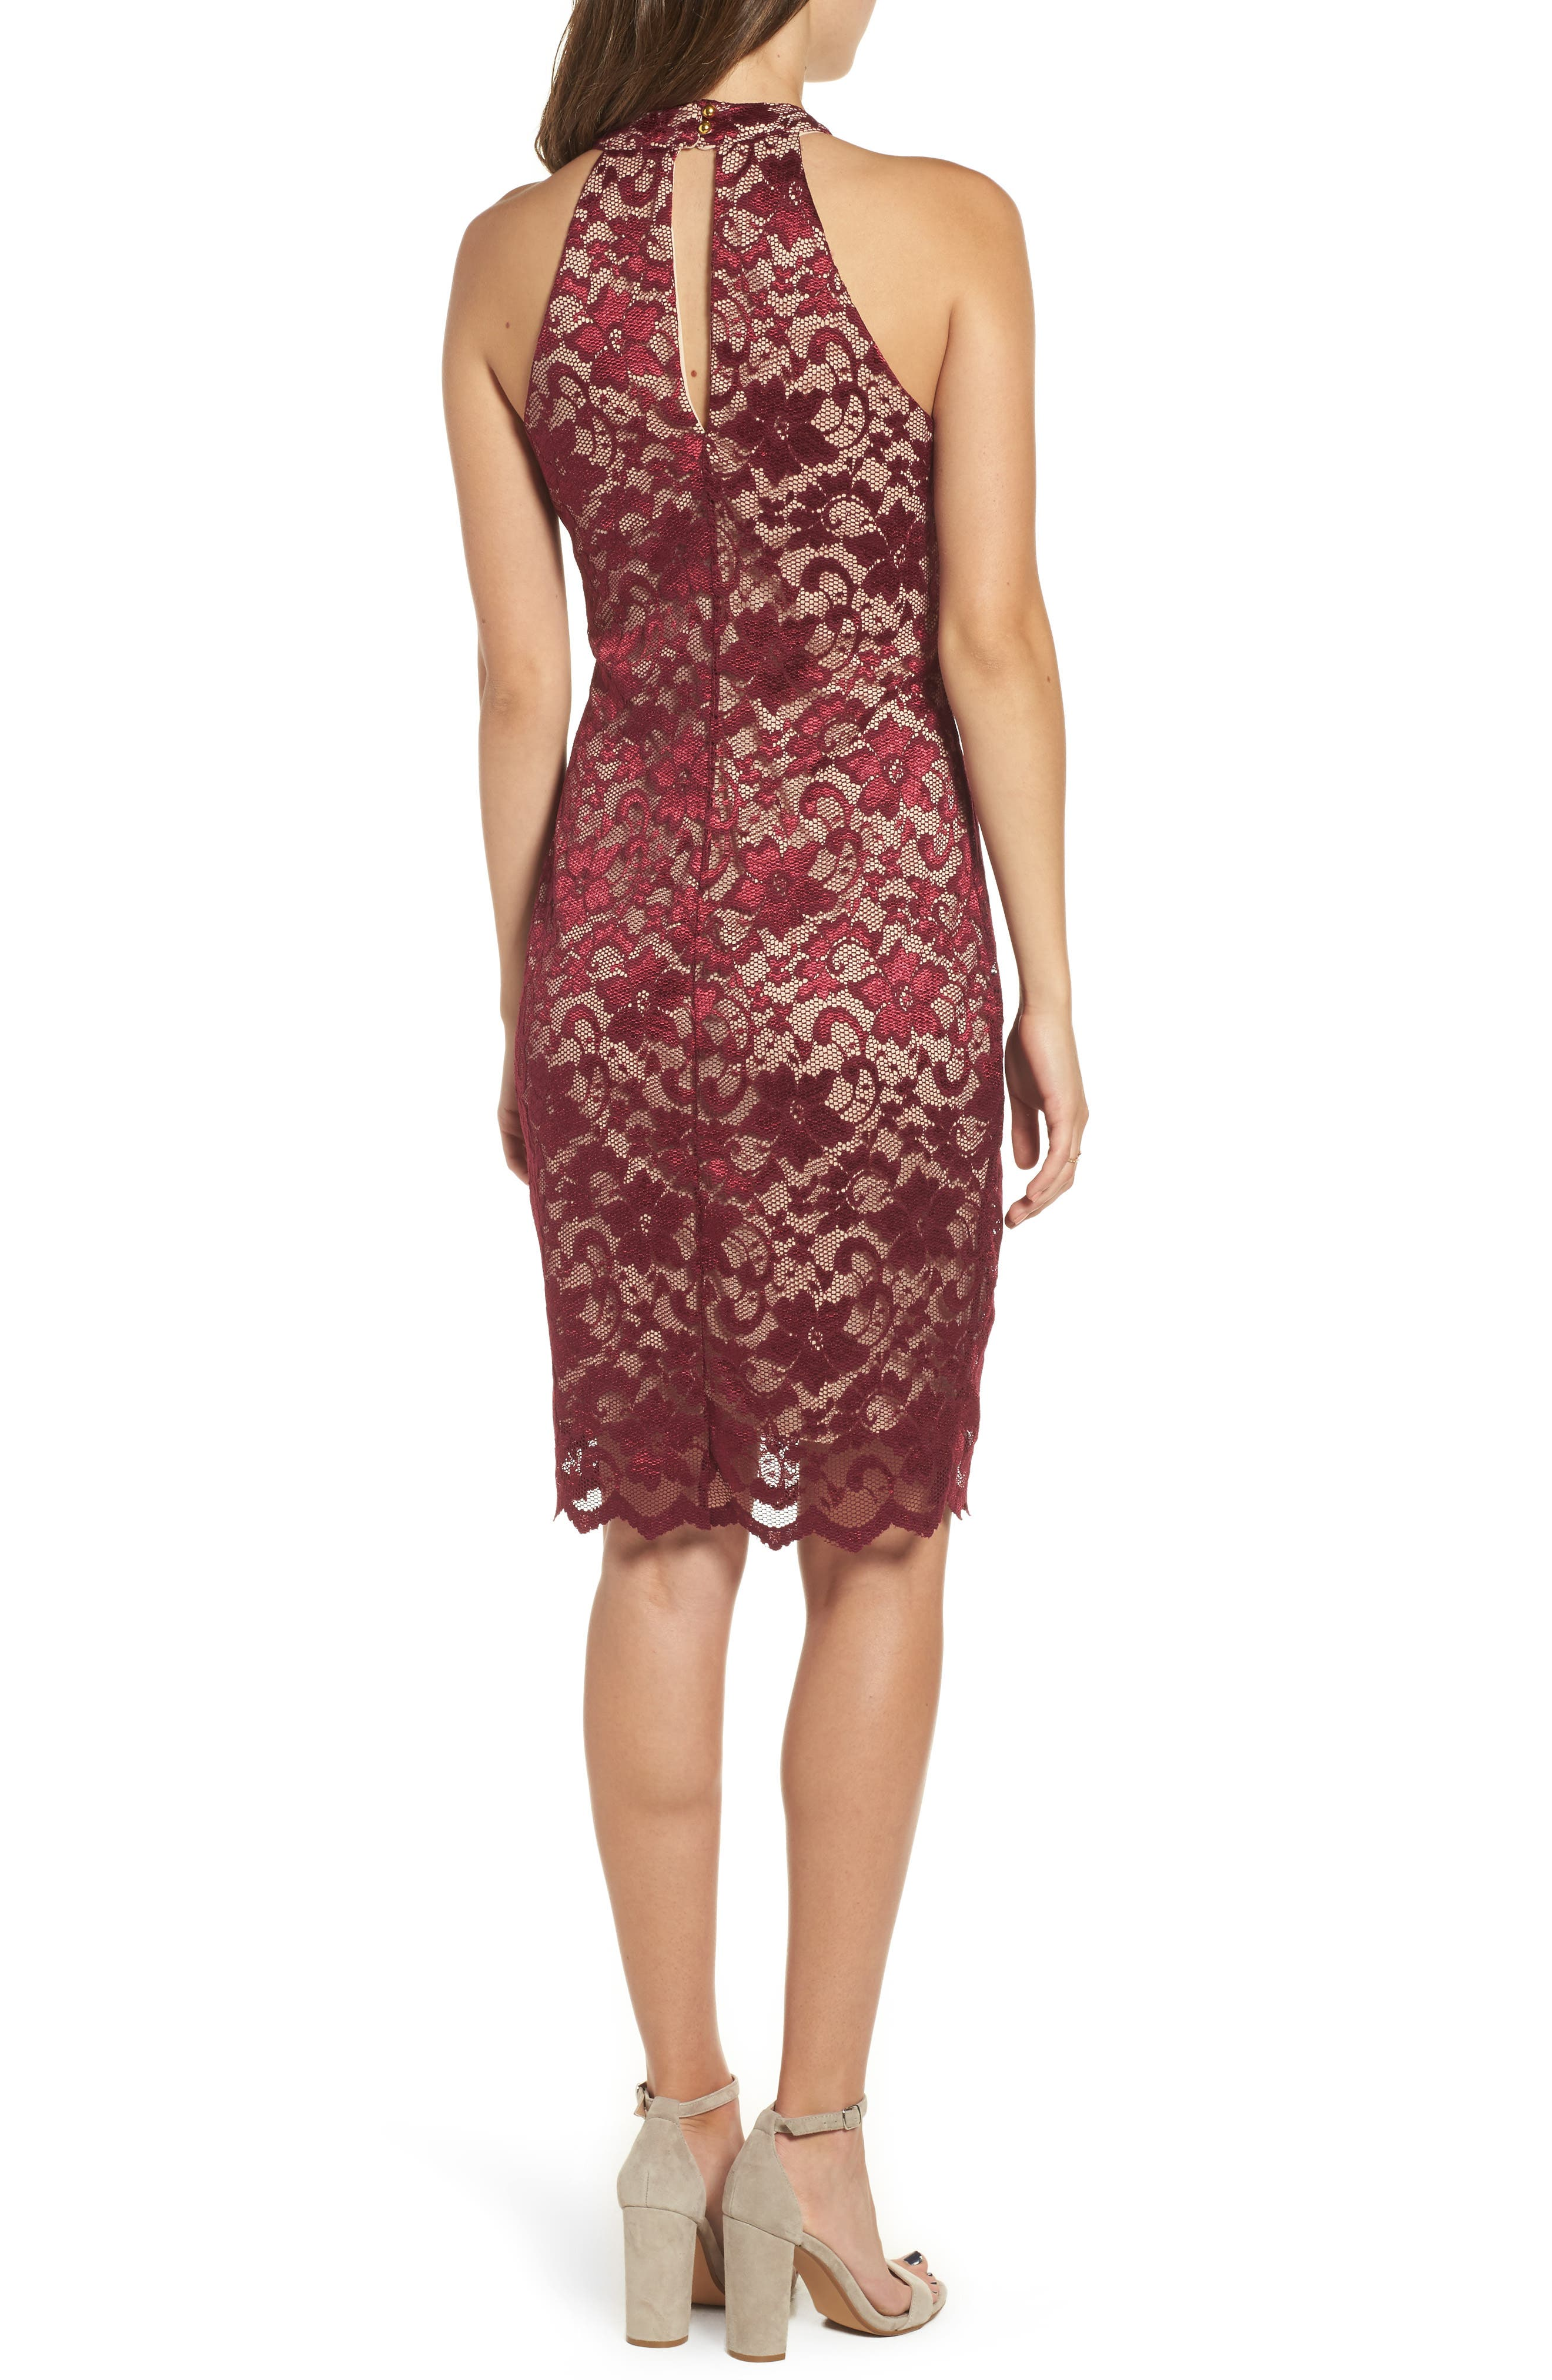 Love Nickie Lew Lace Choker Body Con Dress,                             Alternate thumbnail 2, color,                             930